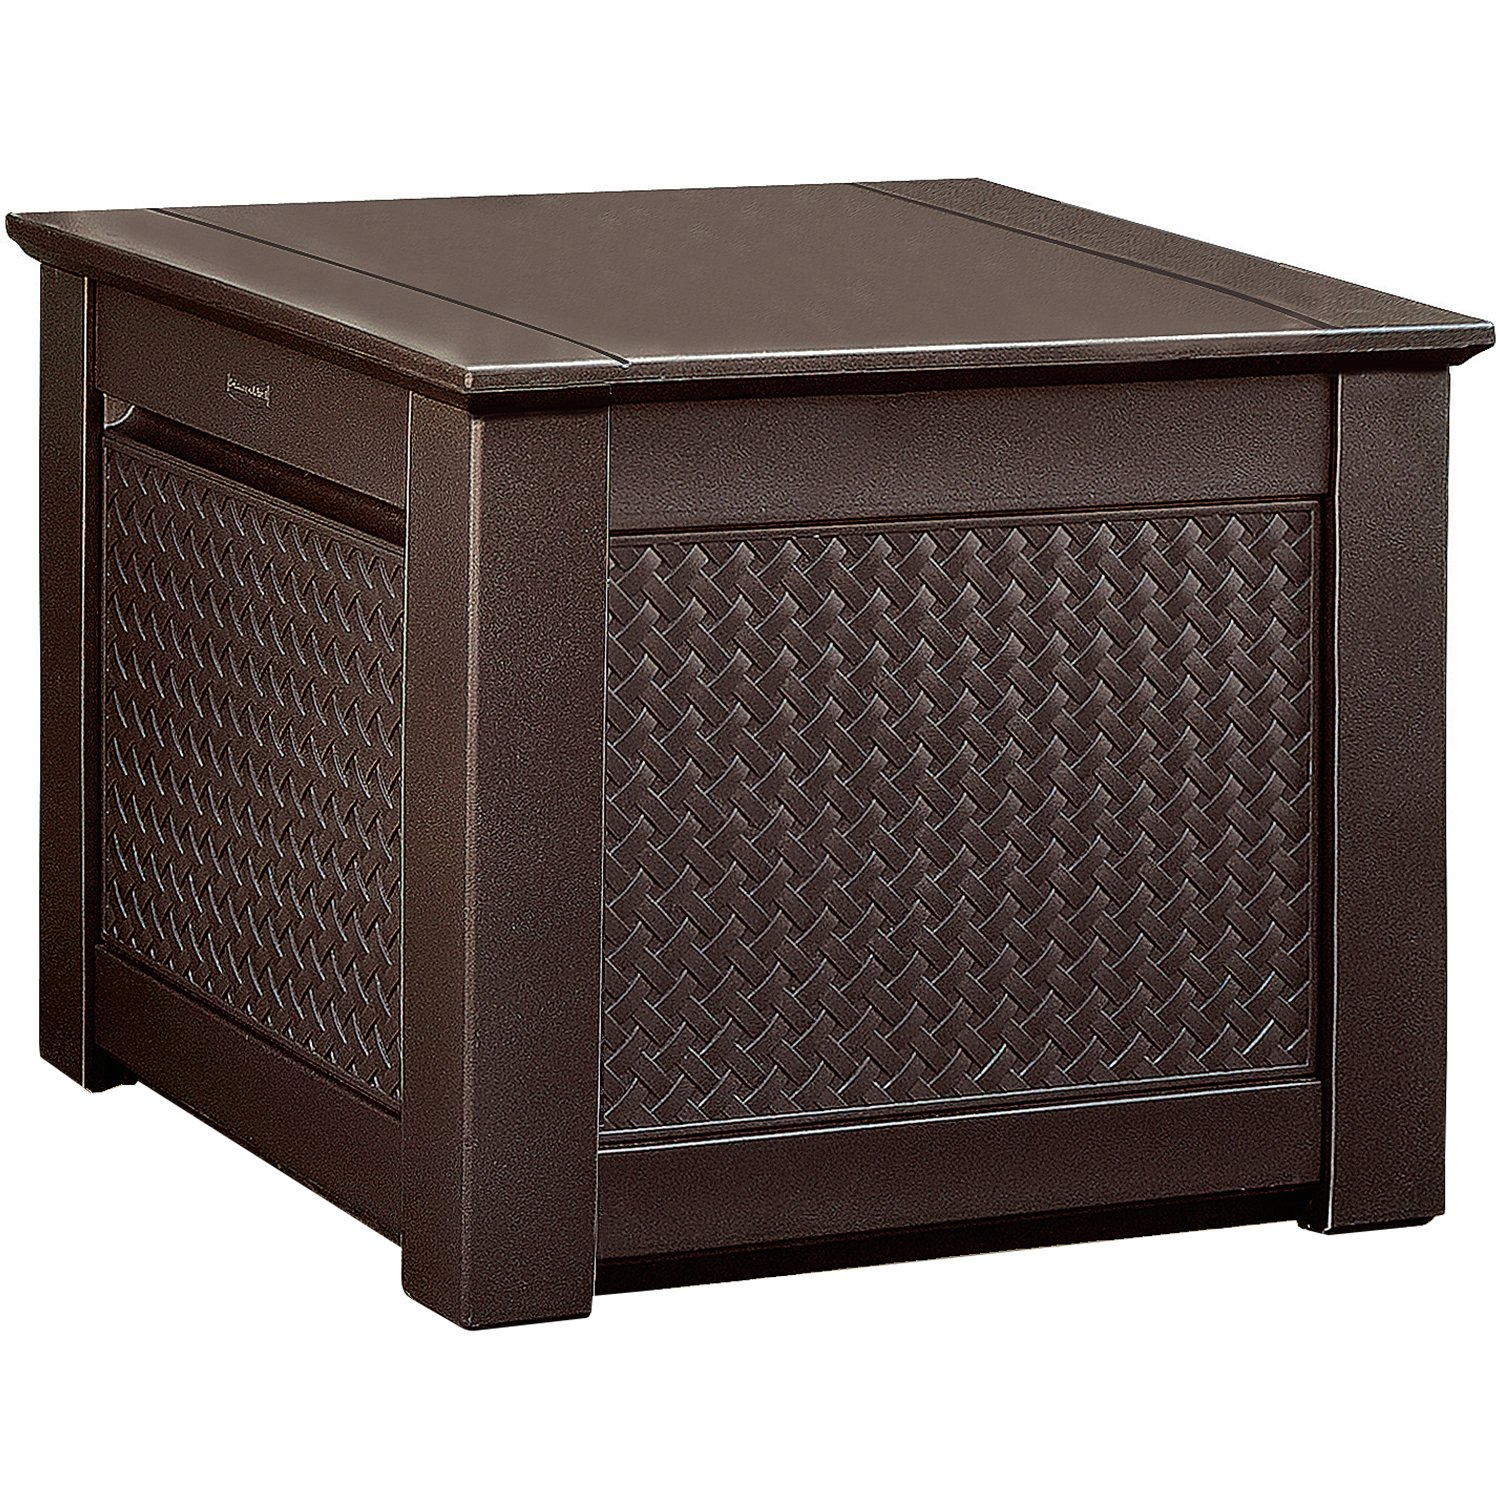 Rubbermaid 1837303 Outdoor Storage Cube with Dark Teak Basket Weave Design Rubbermaid Lawn & Garden